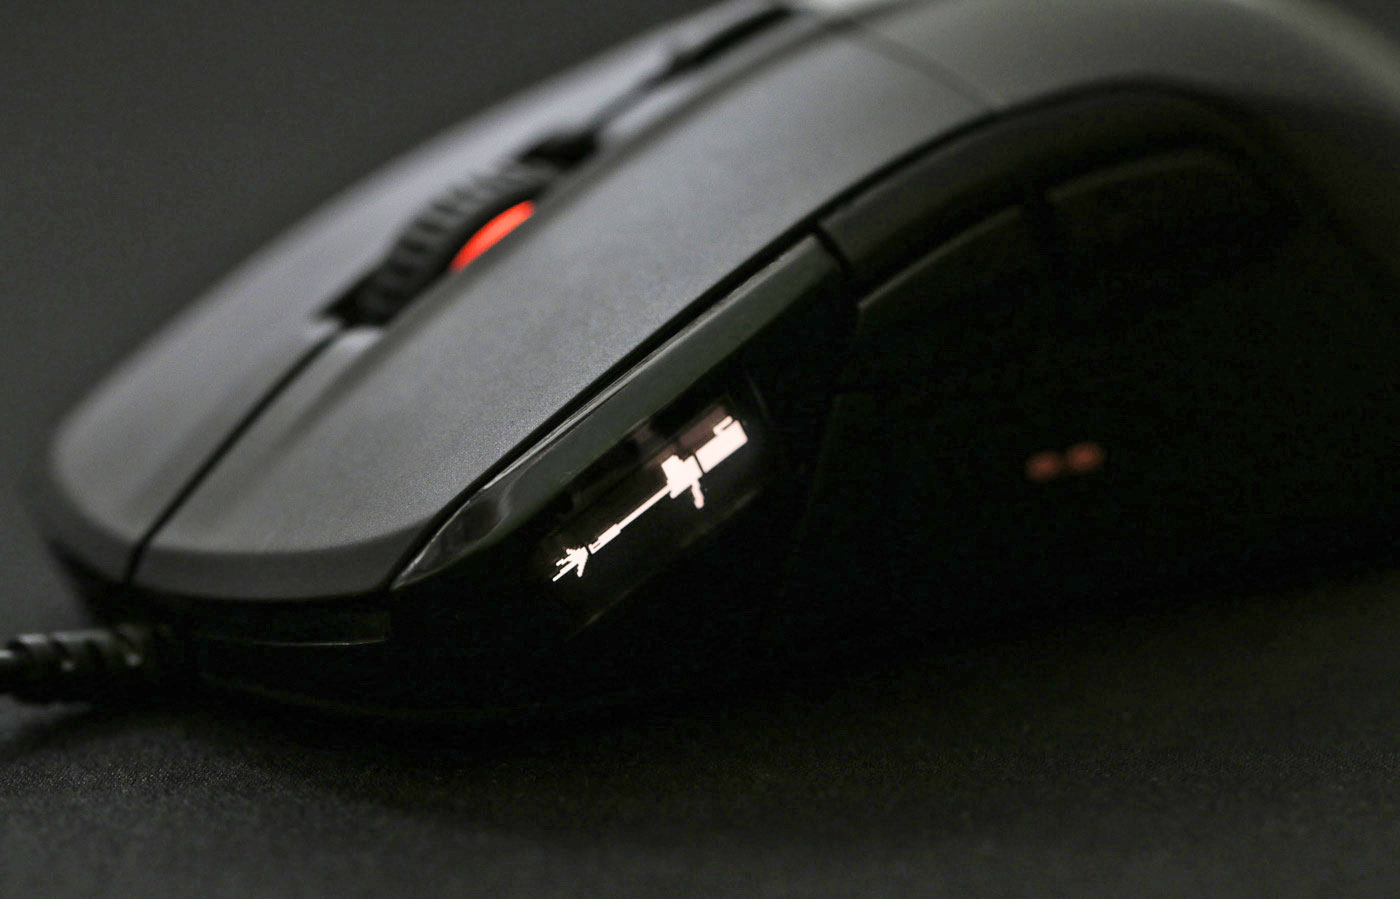 SteelSeries Ships OLED-Packing Rival 700